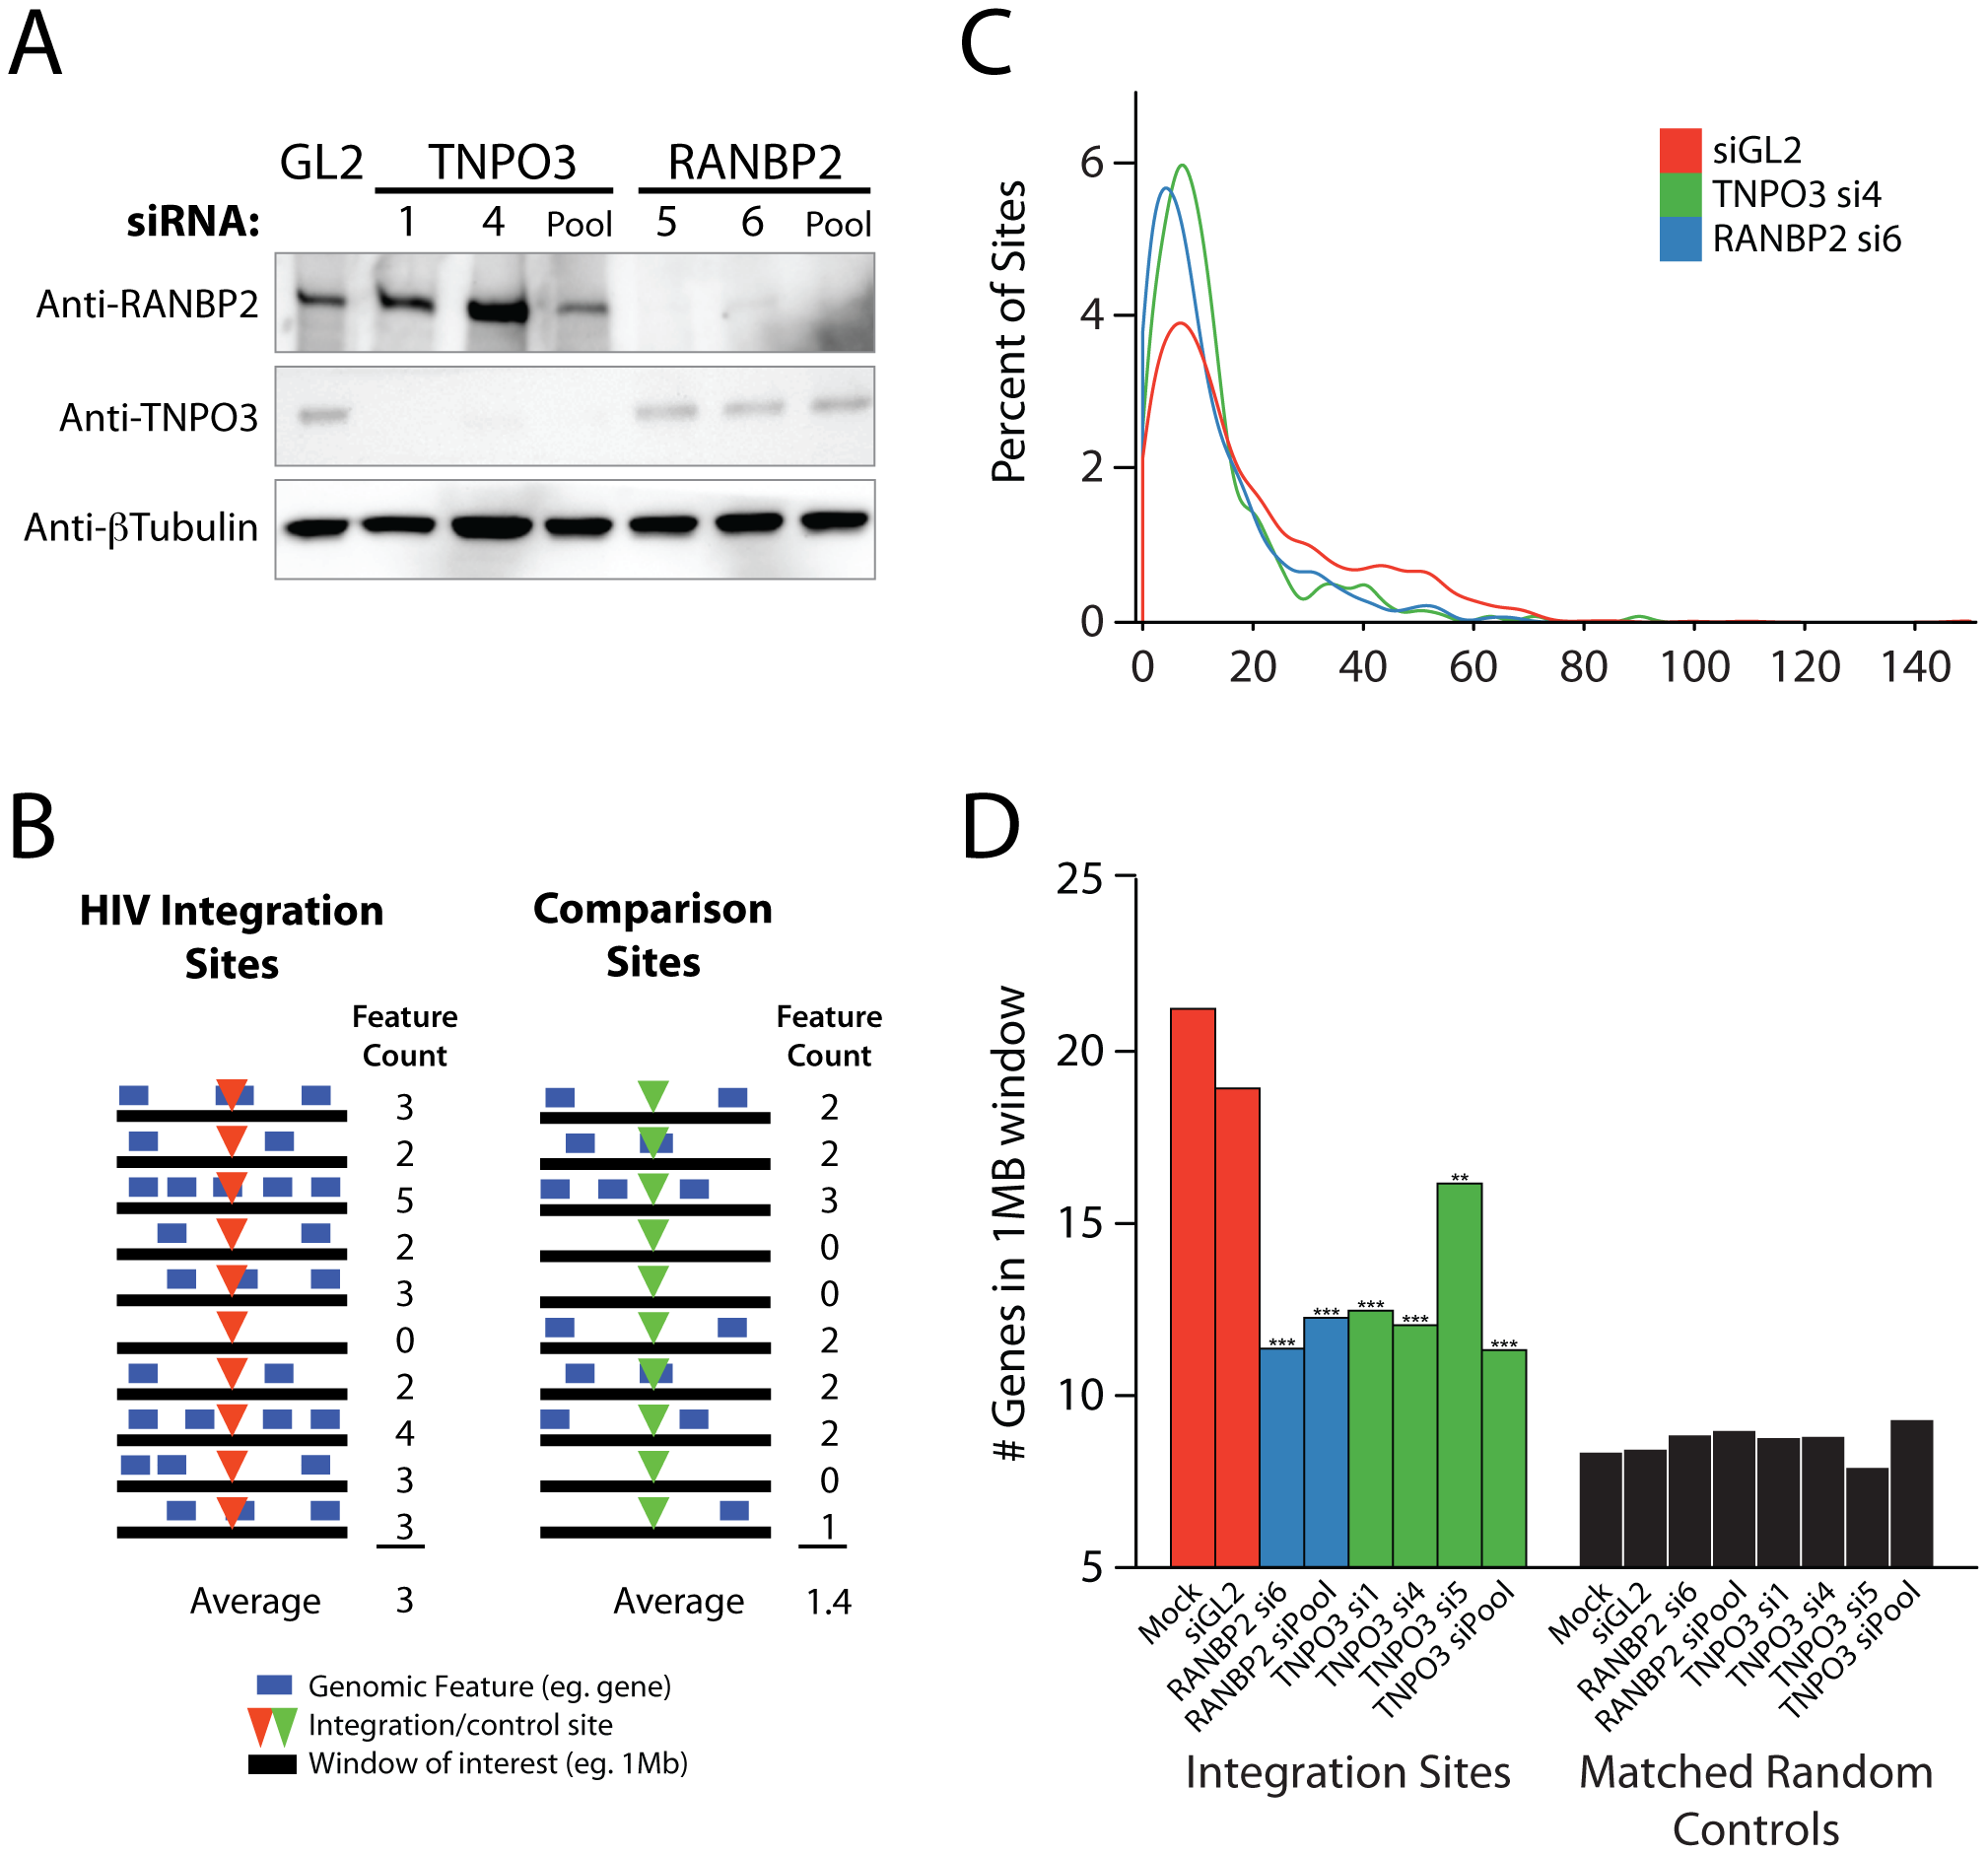 Effects of siRNA treatments on HIV integration in gene dense regions.